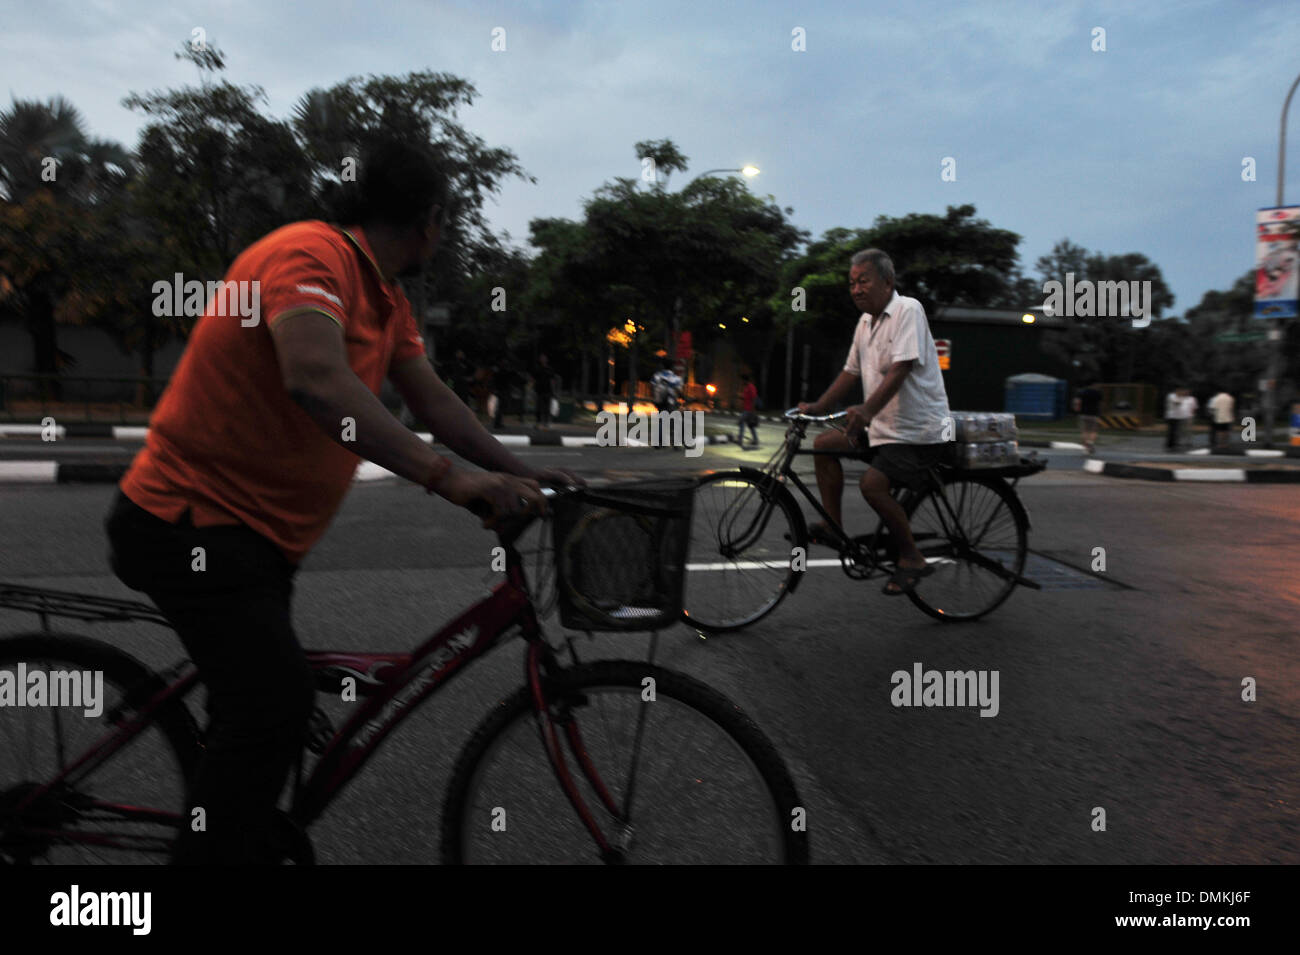 Singapore. 15th Dec, 2013. Two city dwellers cycle along Singapore's Race Course Rd, Dec. 15, 2015. Singapore government has suspended the sale and consumption of alcoholic drinks in Little India area from Dec. 14 to 15. Credit:  Then Chih Wey/Xinhua/Alamy Live News - Stock Image